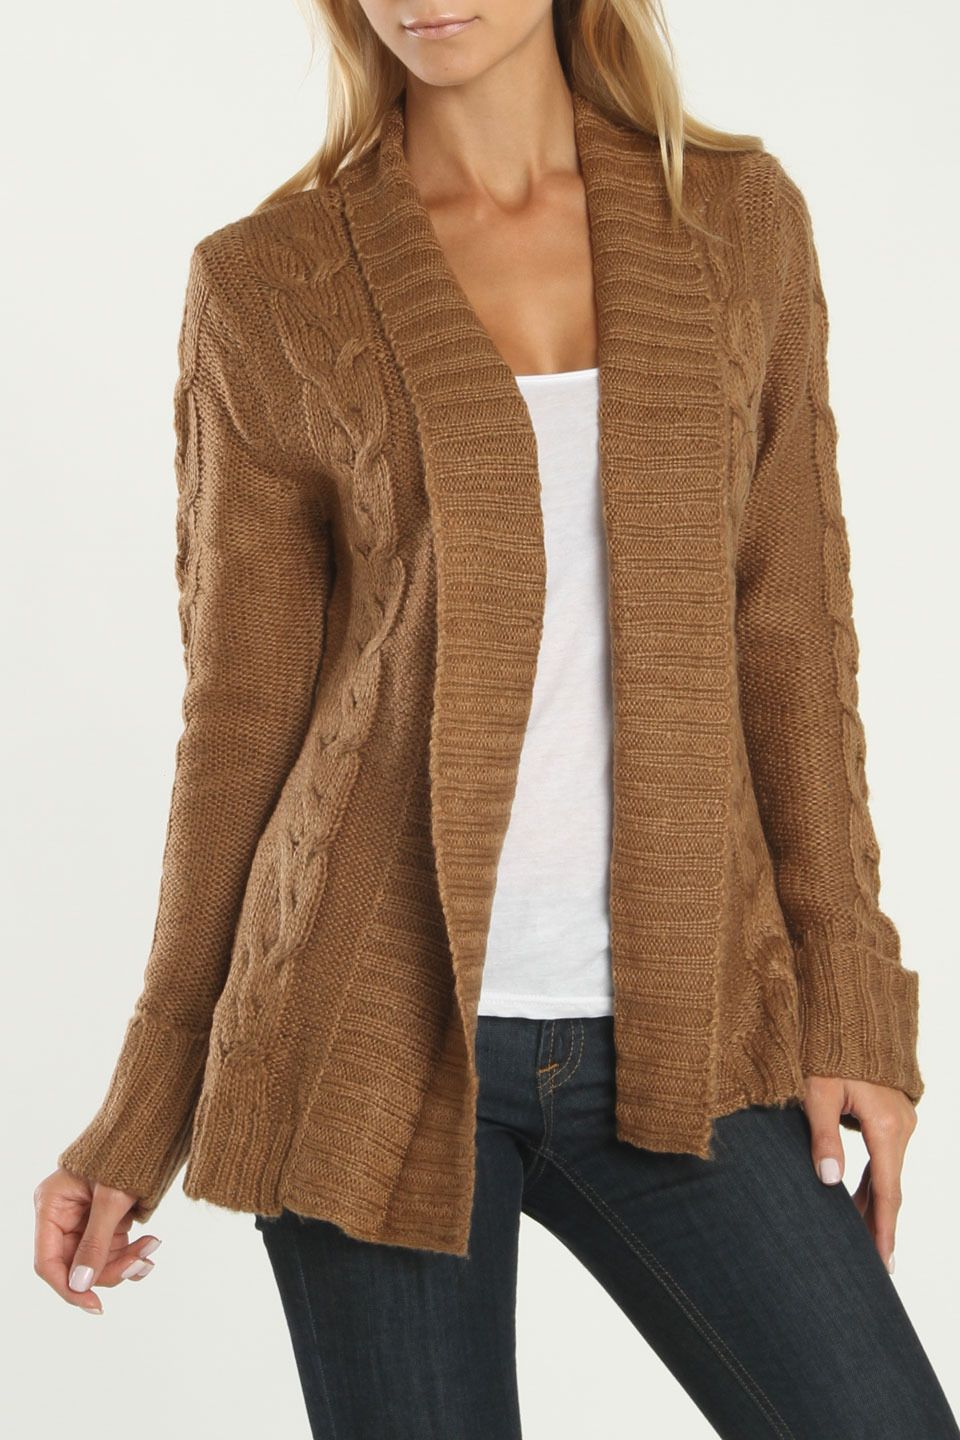 Long Sleeve Cardigan In Light Brown. | Comfy Clothes | Pinterest ...